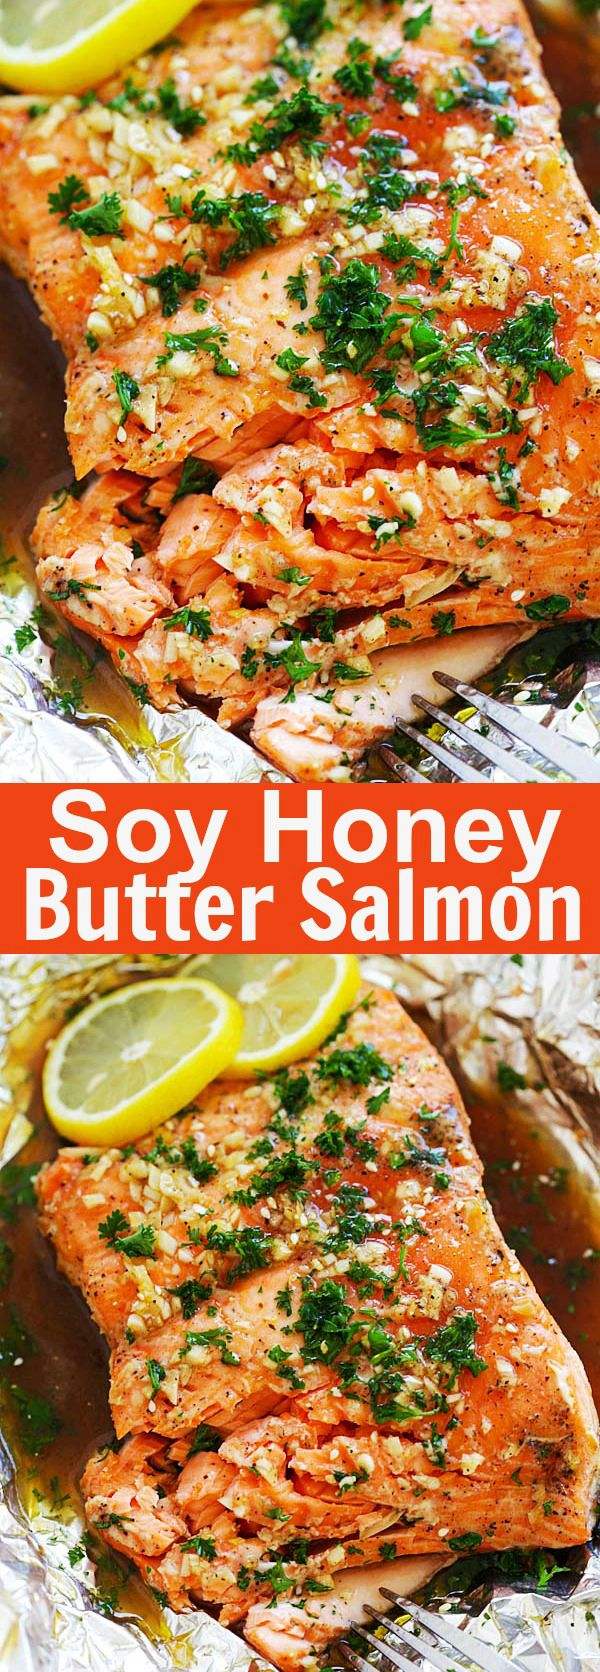 Soy Honey Butter Salmon – Easy roasted salmon recipe with soy sauce and honey butter. Moist, juicy and delicious salmon for the entire family   rasamalaysia.com